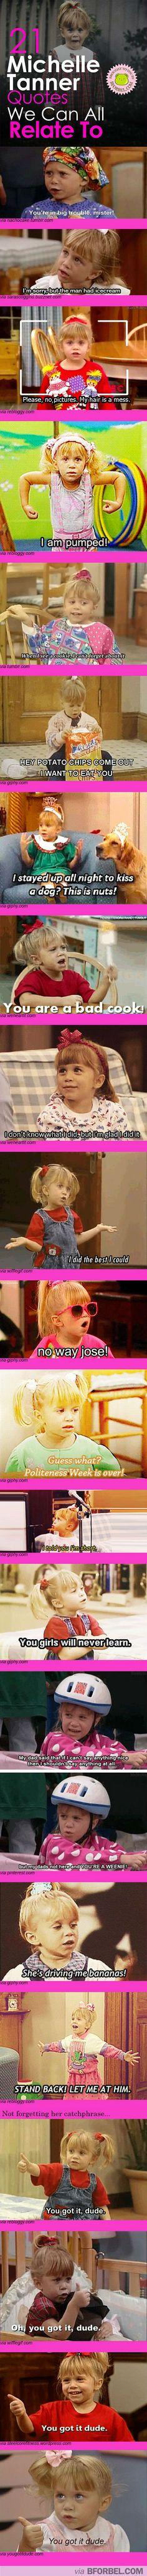 21 Michelle Tanner Quotes We Can All Relate To…